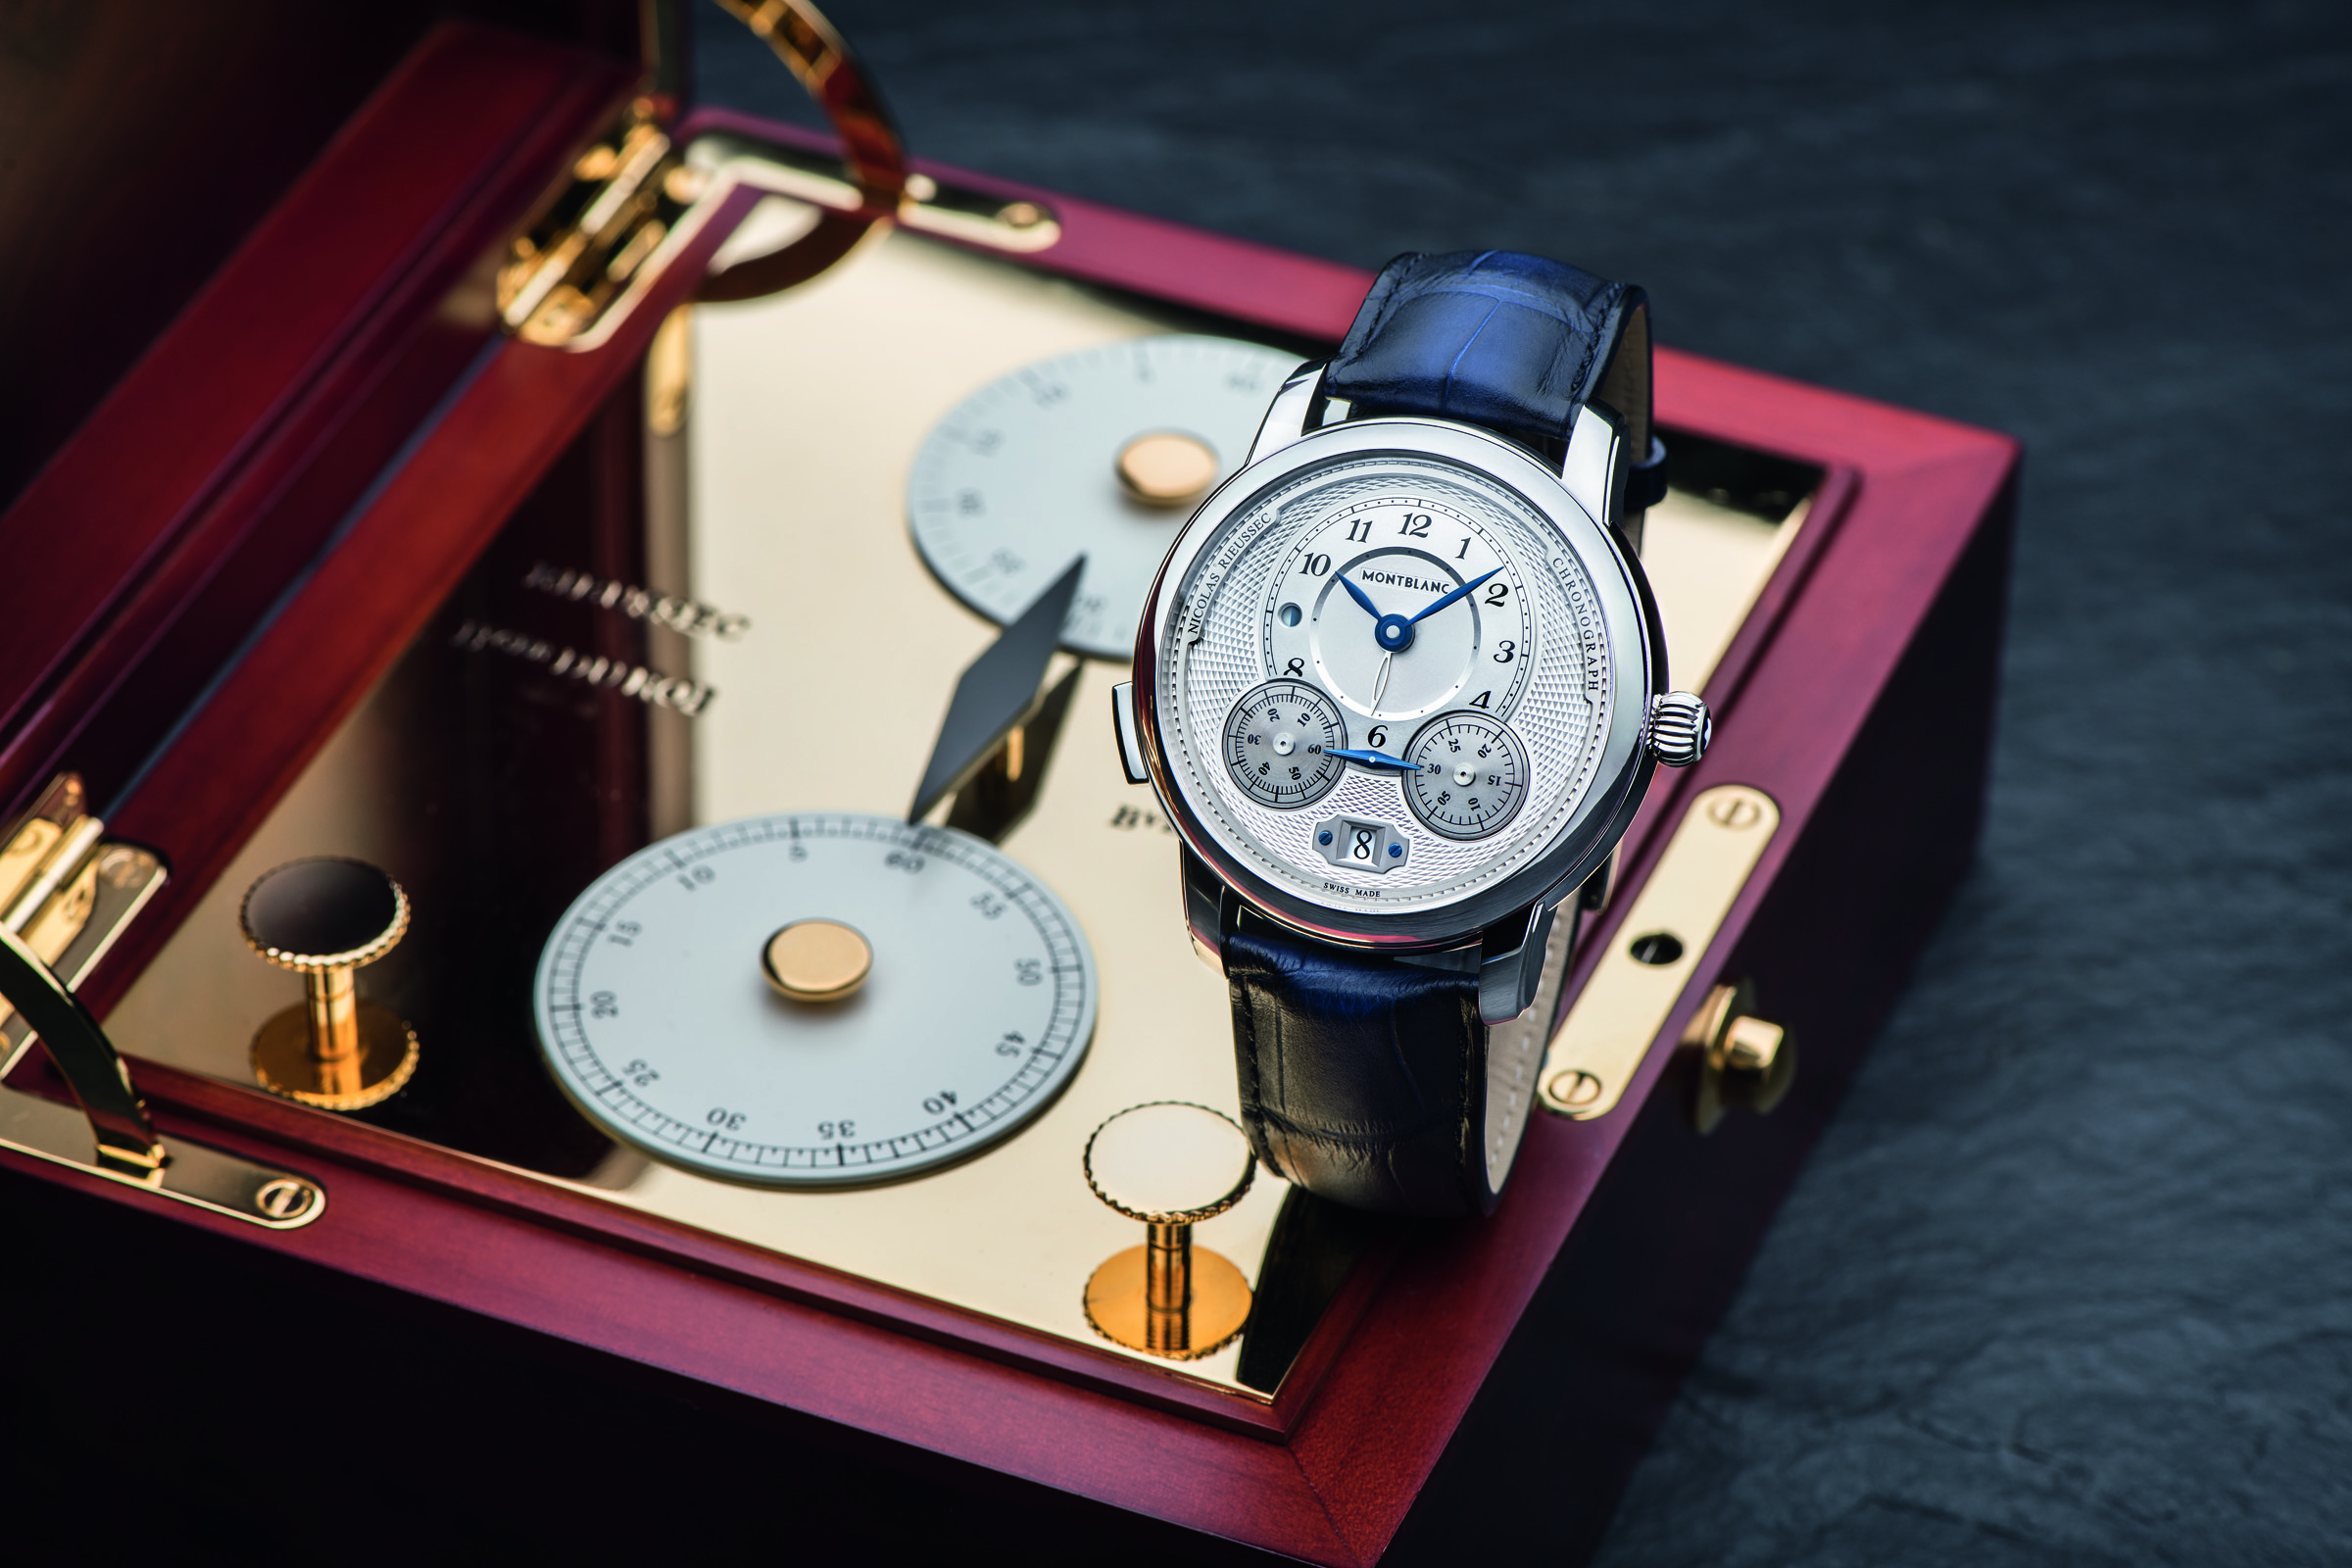 d6877557dcf Montblanc celebrates 160 years of Minerva heritage with the new Star Legacy  Collection